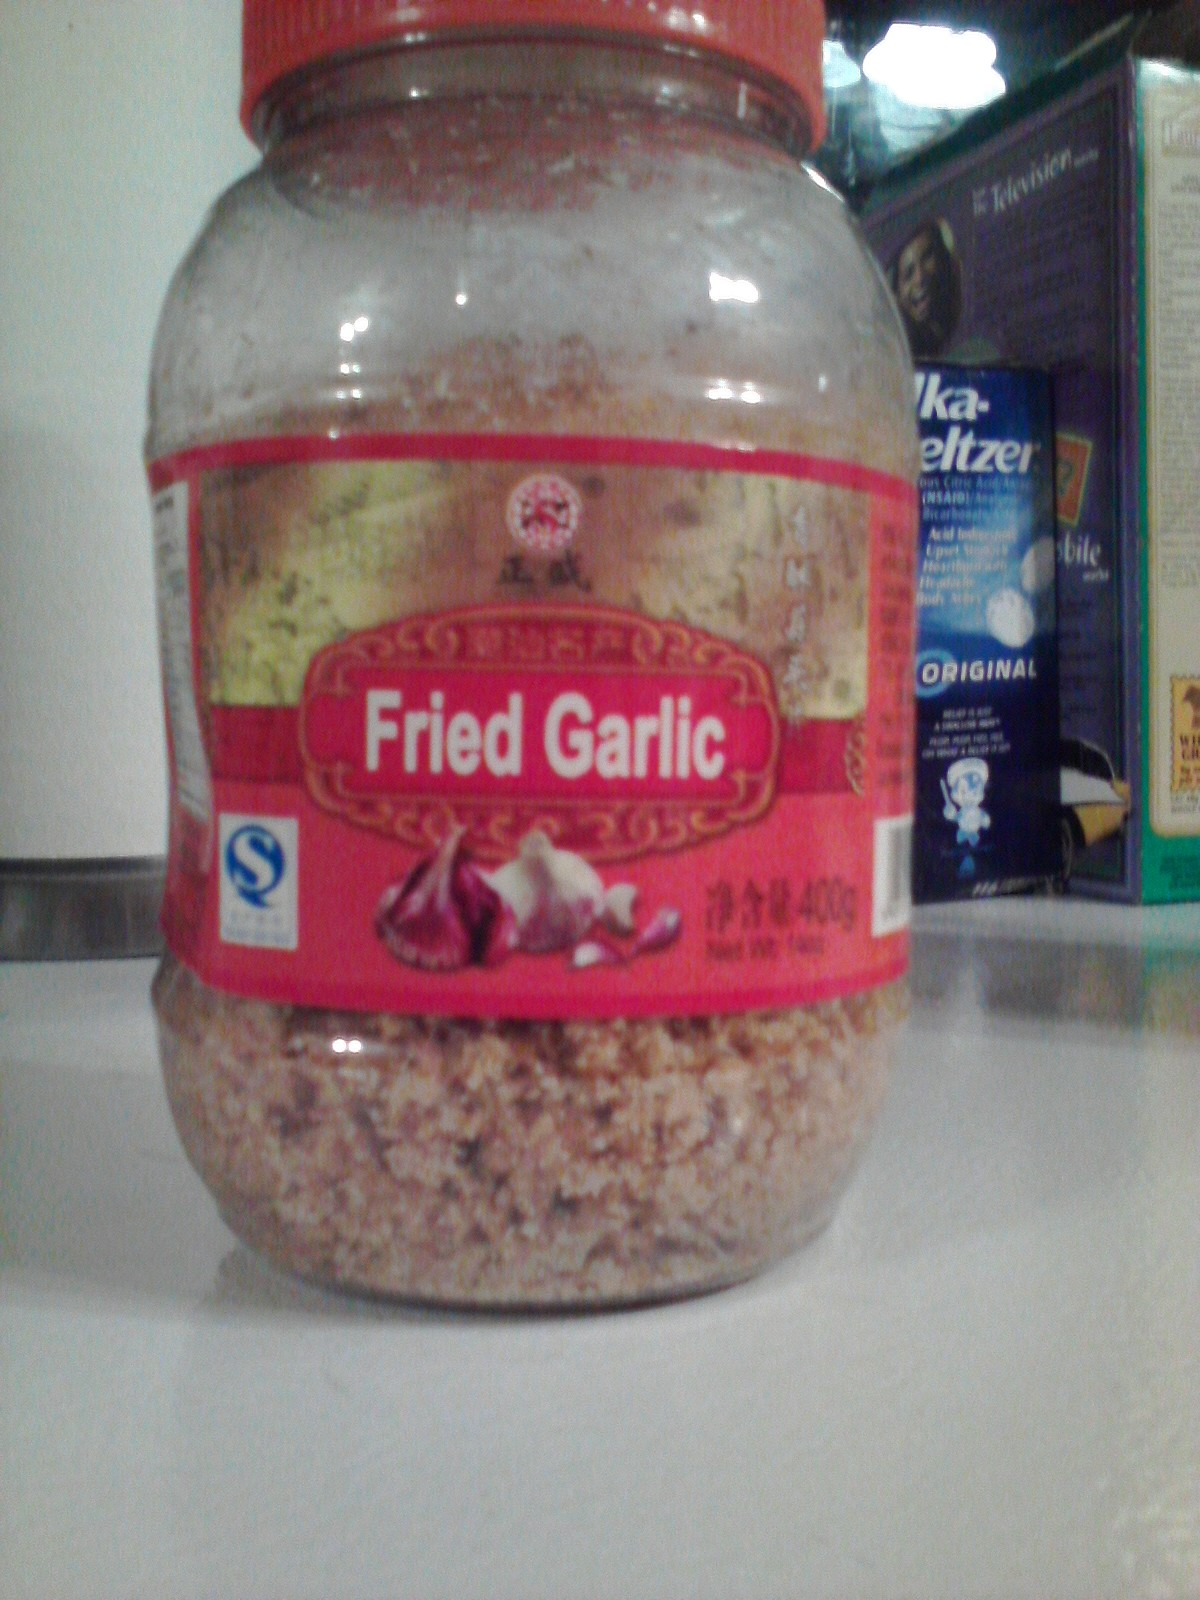 I try not to put garlic in everything but when I do this is a quick way to do it that tastes great. Just a sprinkle does it. Costs 5.95 in Tay Do